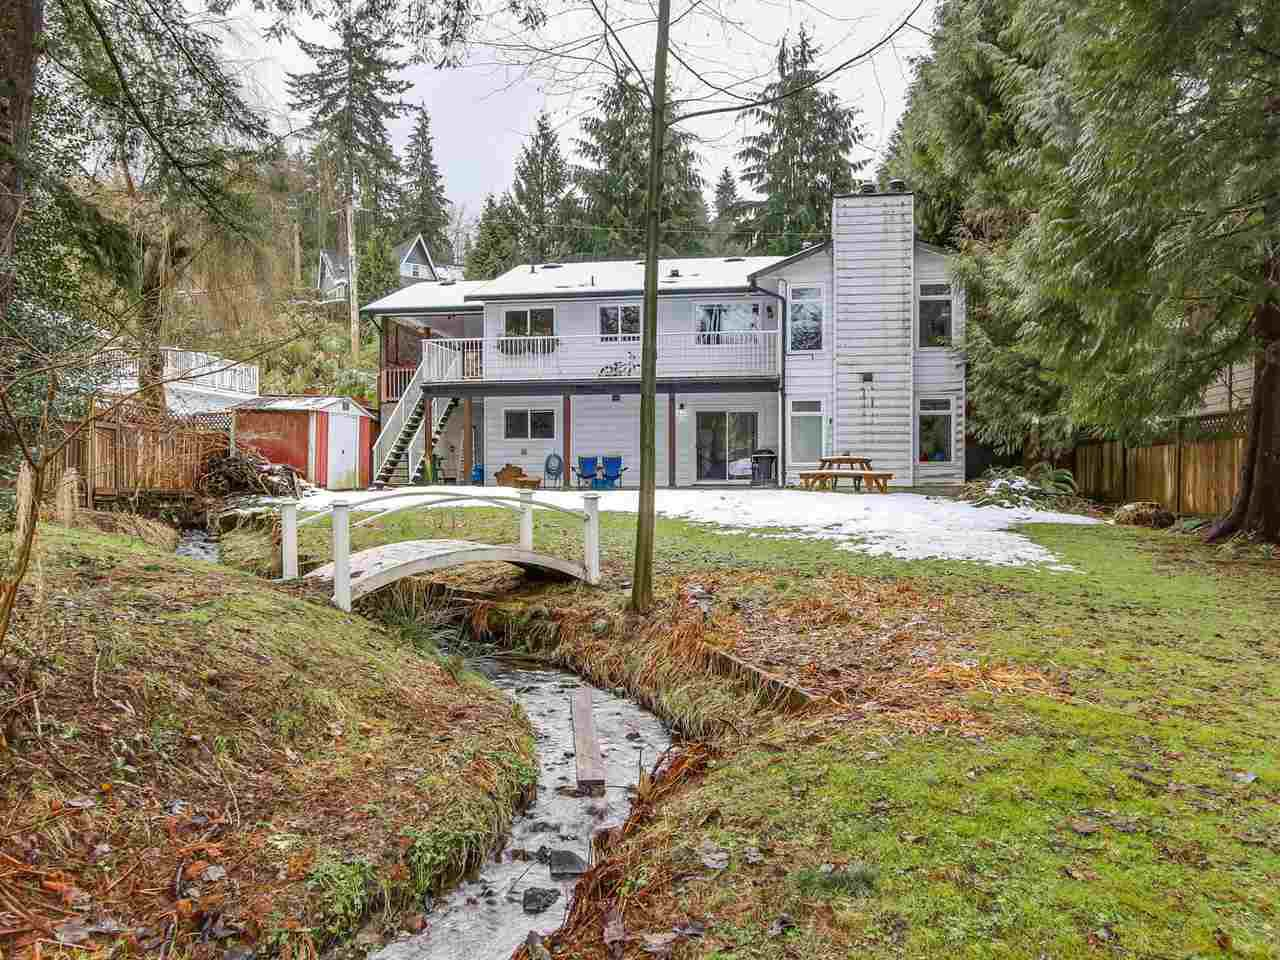 Main Photo: 3364 HENRY Street in Port Moody: Port Moody Centre House for sale : MLS®# R2144951